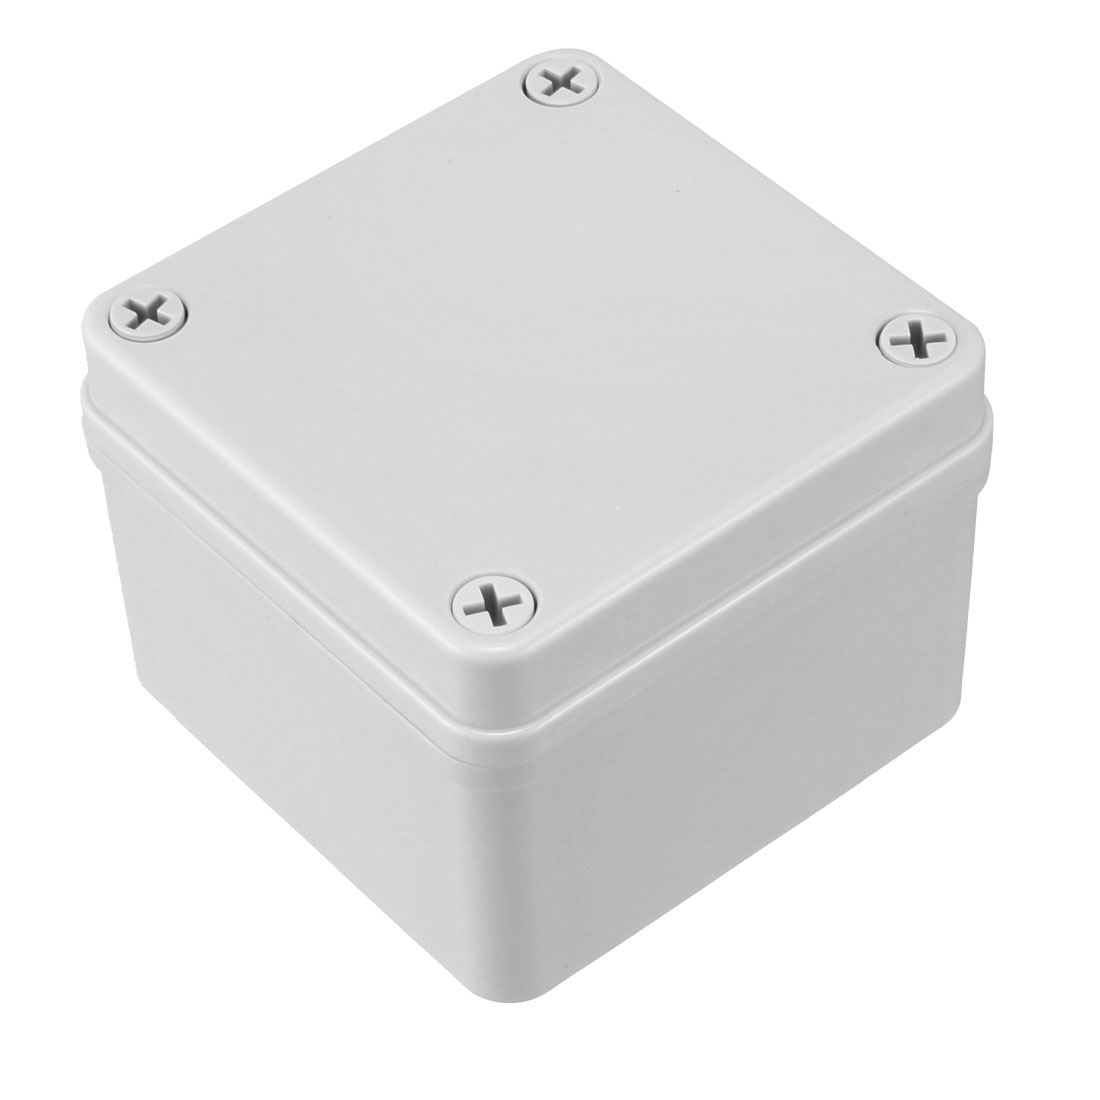 100 x 100 x 75mm Electronic ABS Plastic DIY Junction Box Enclosure Case Grey